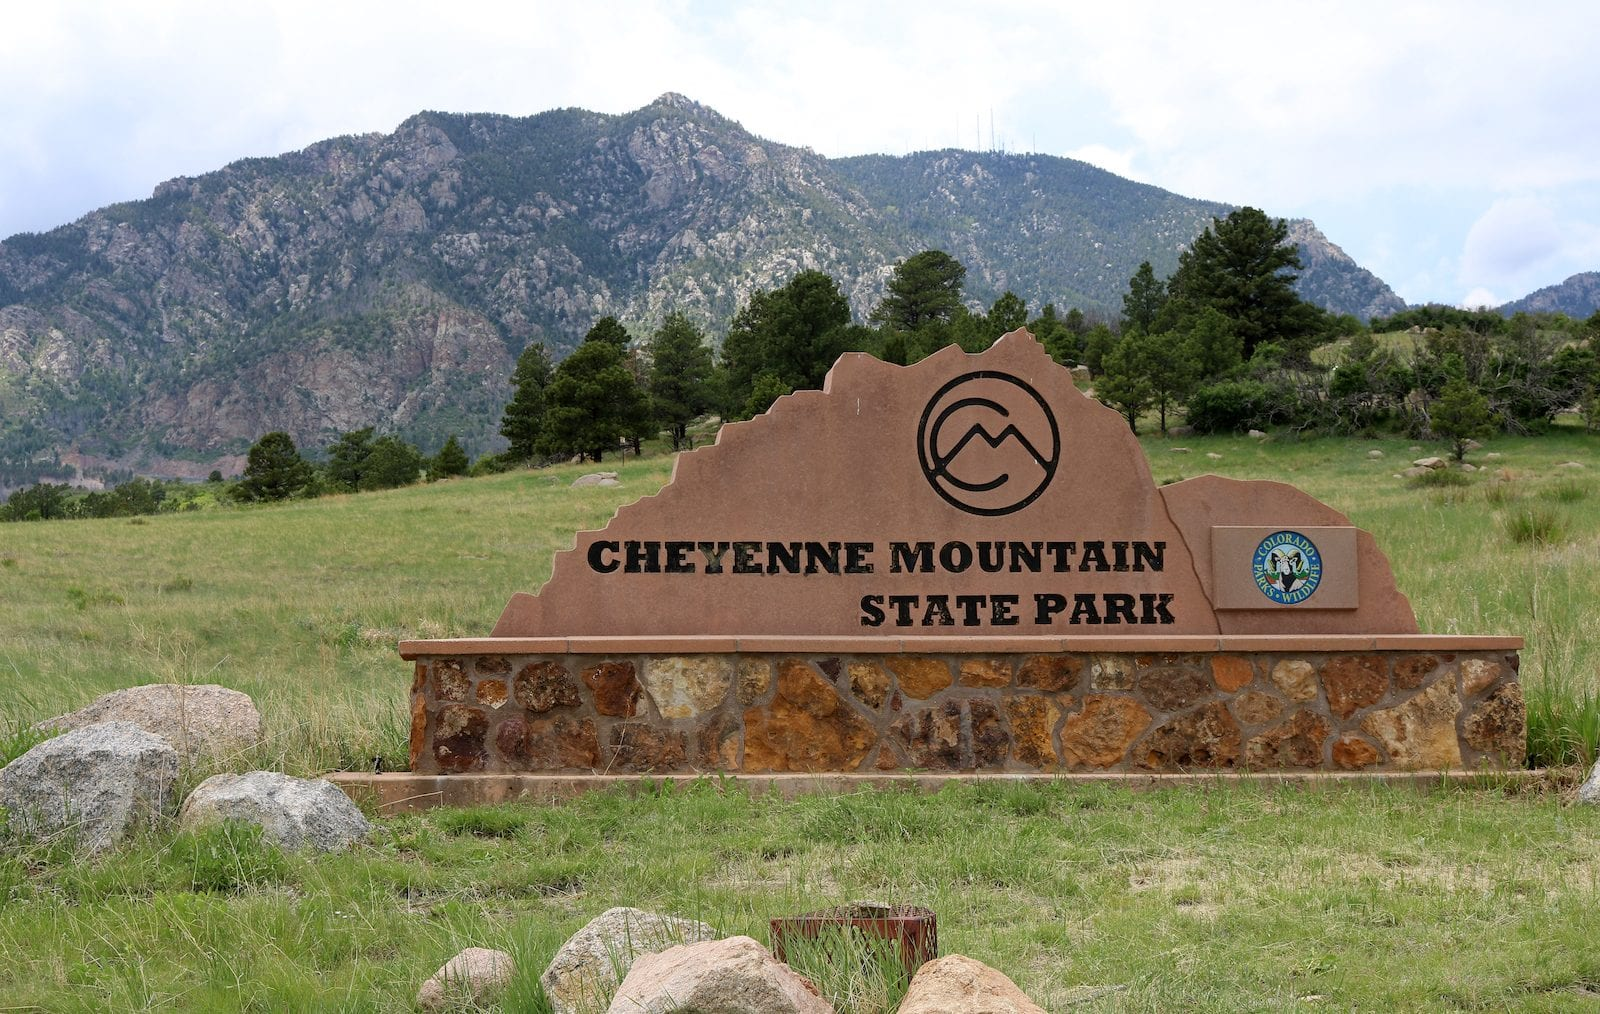 Cheyenne Mountain State Park, Colorado